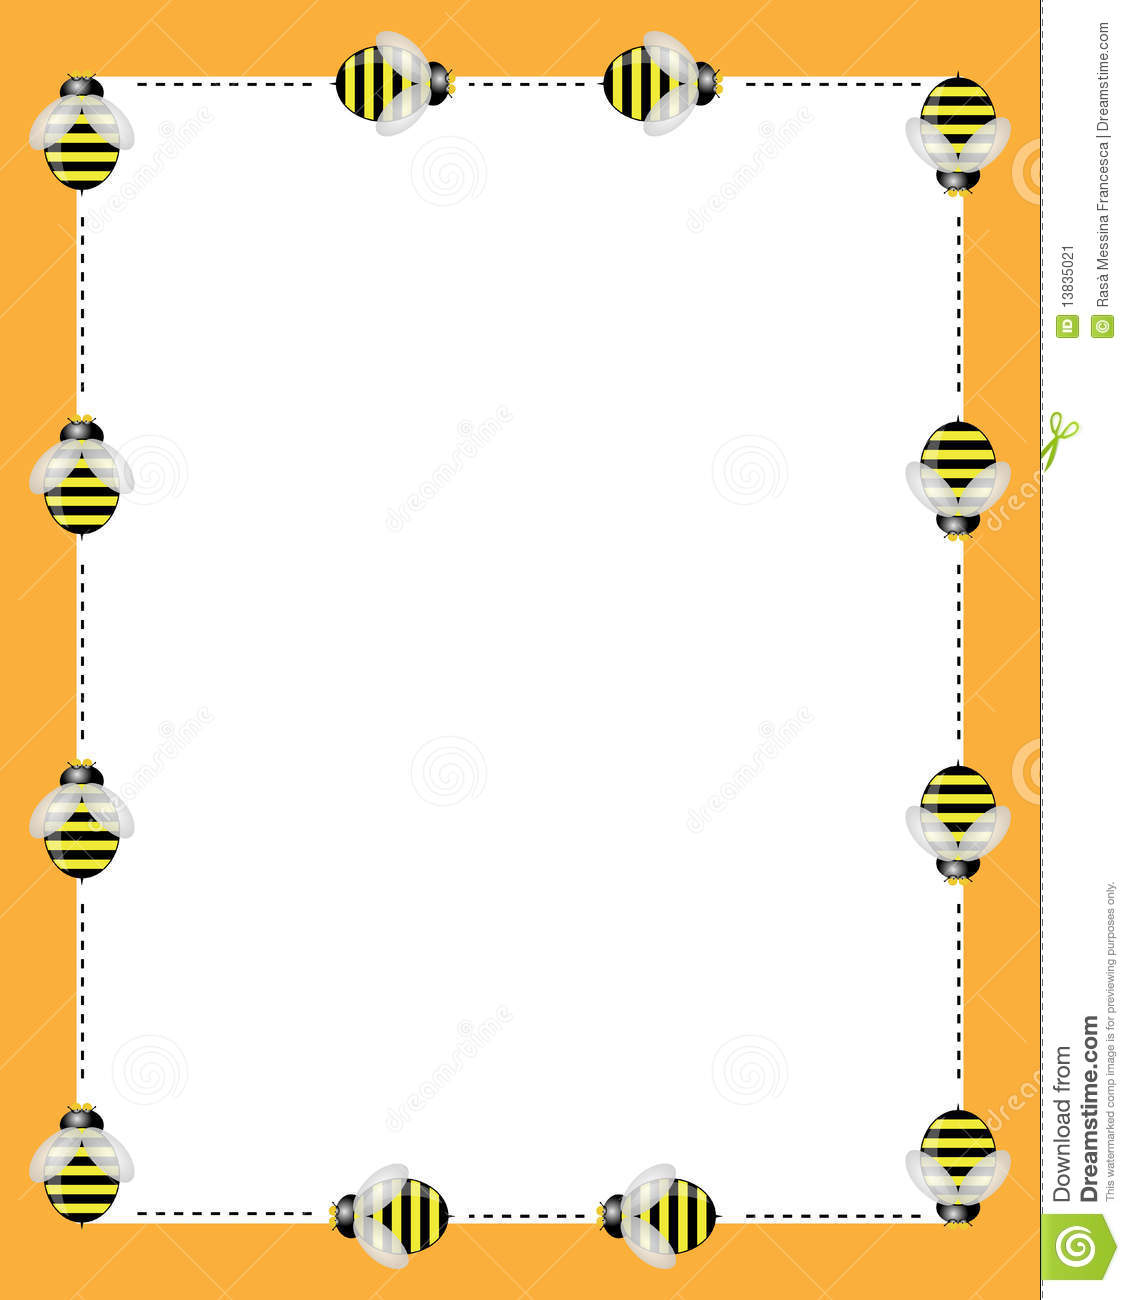 Bees Borders Frame Stock Vector Illustration Of Bees